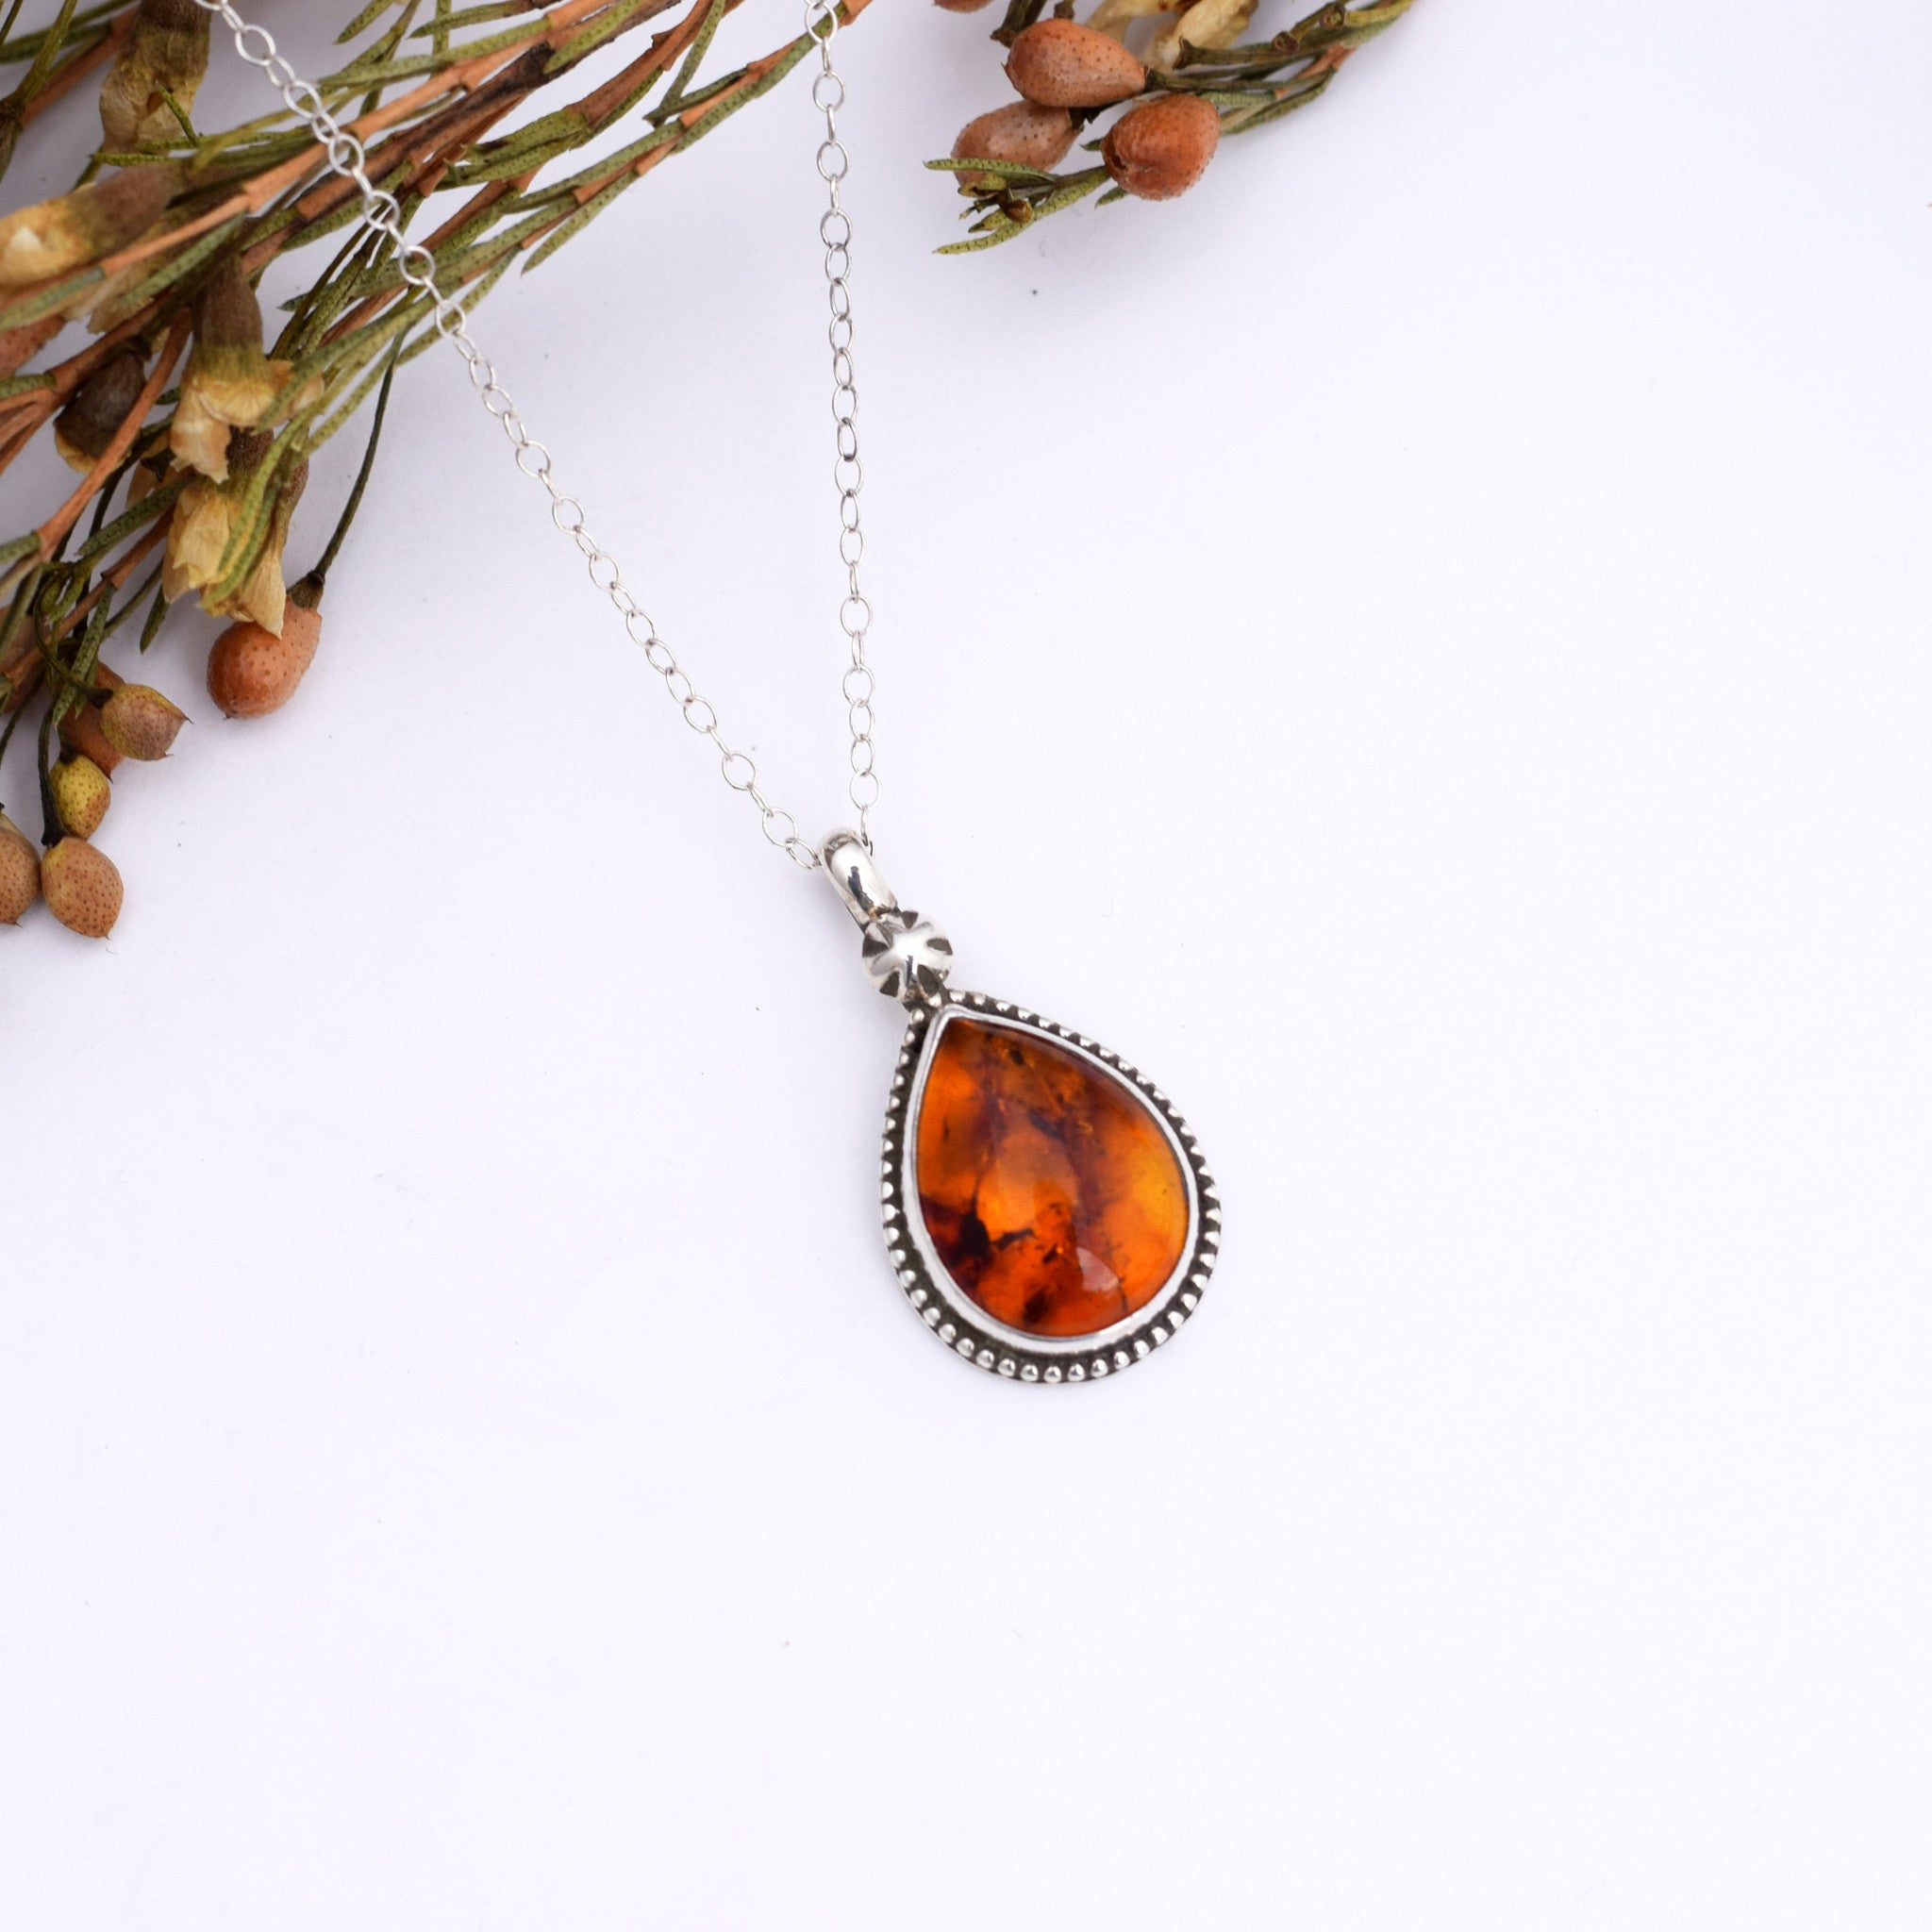 Small Star Studded Amber Necklace